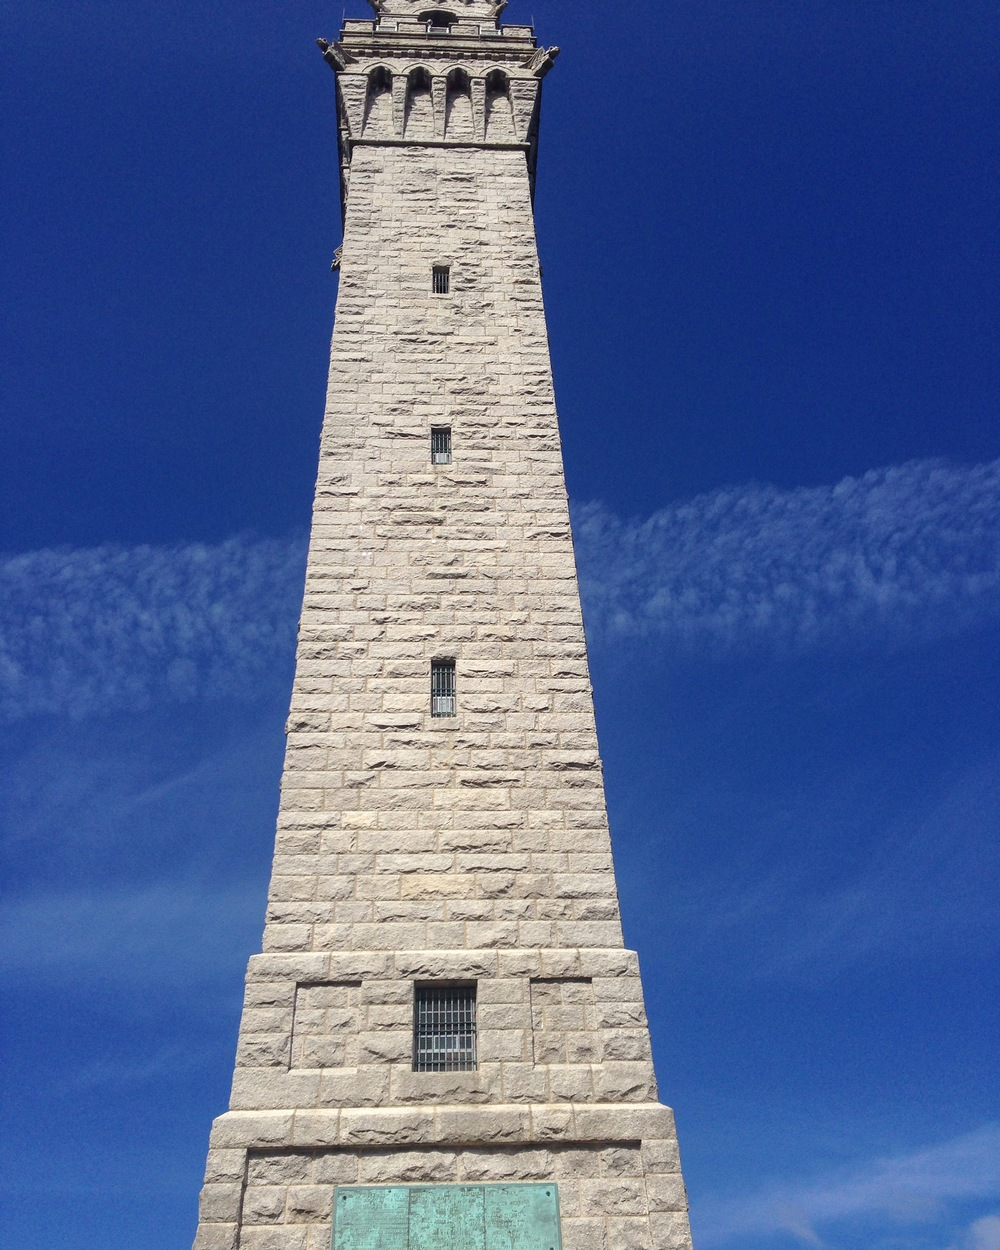 The Pilgrim Monument standing tall and proud. Yes, this is no-filter.